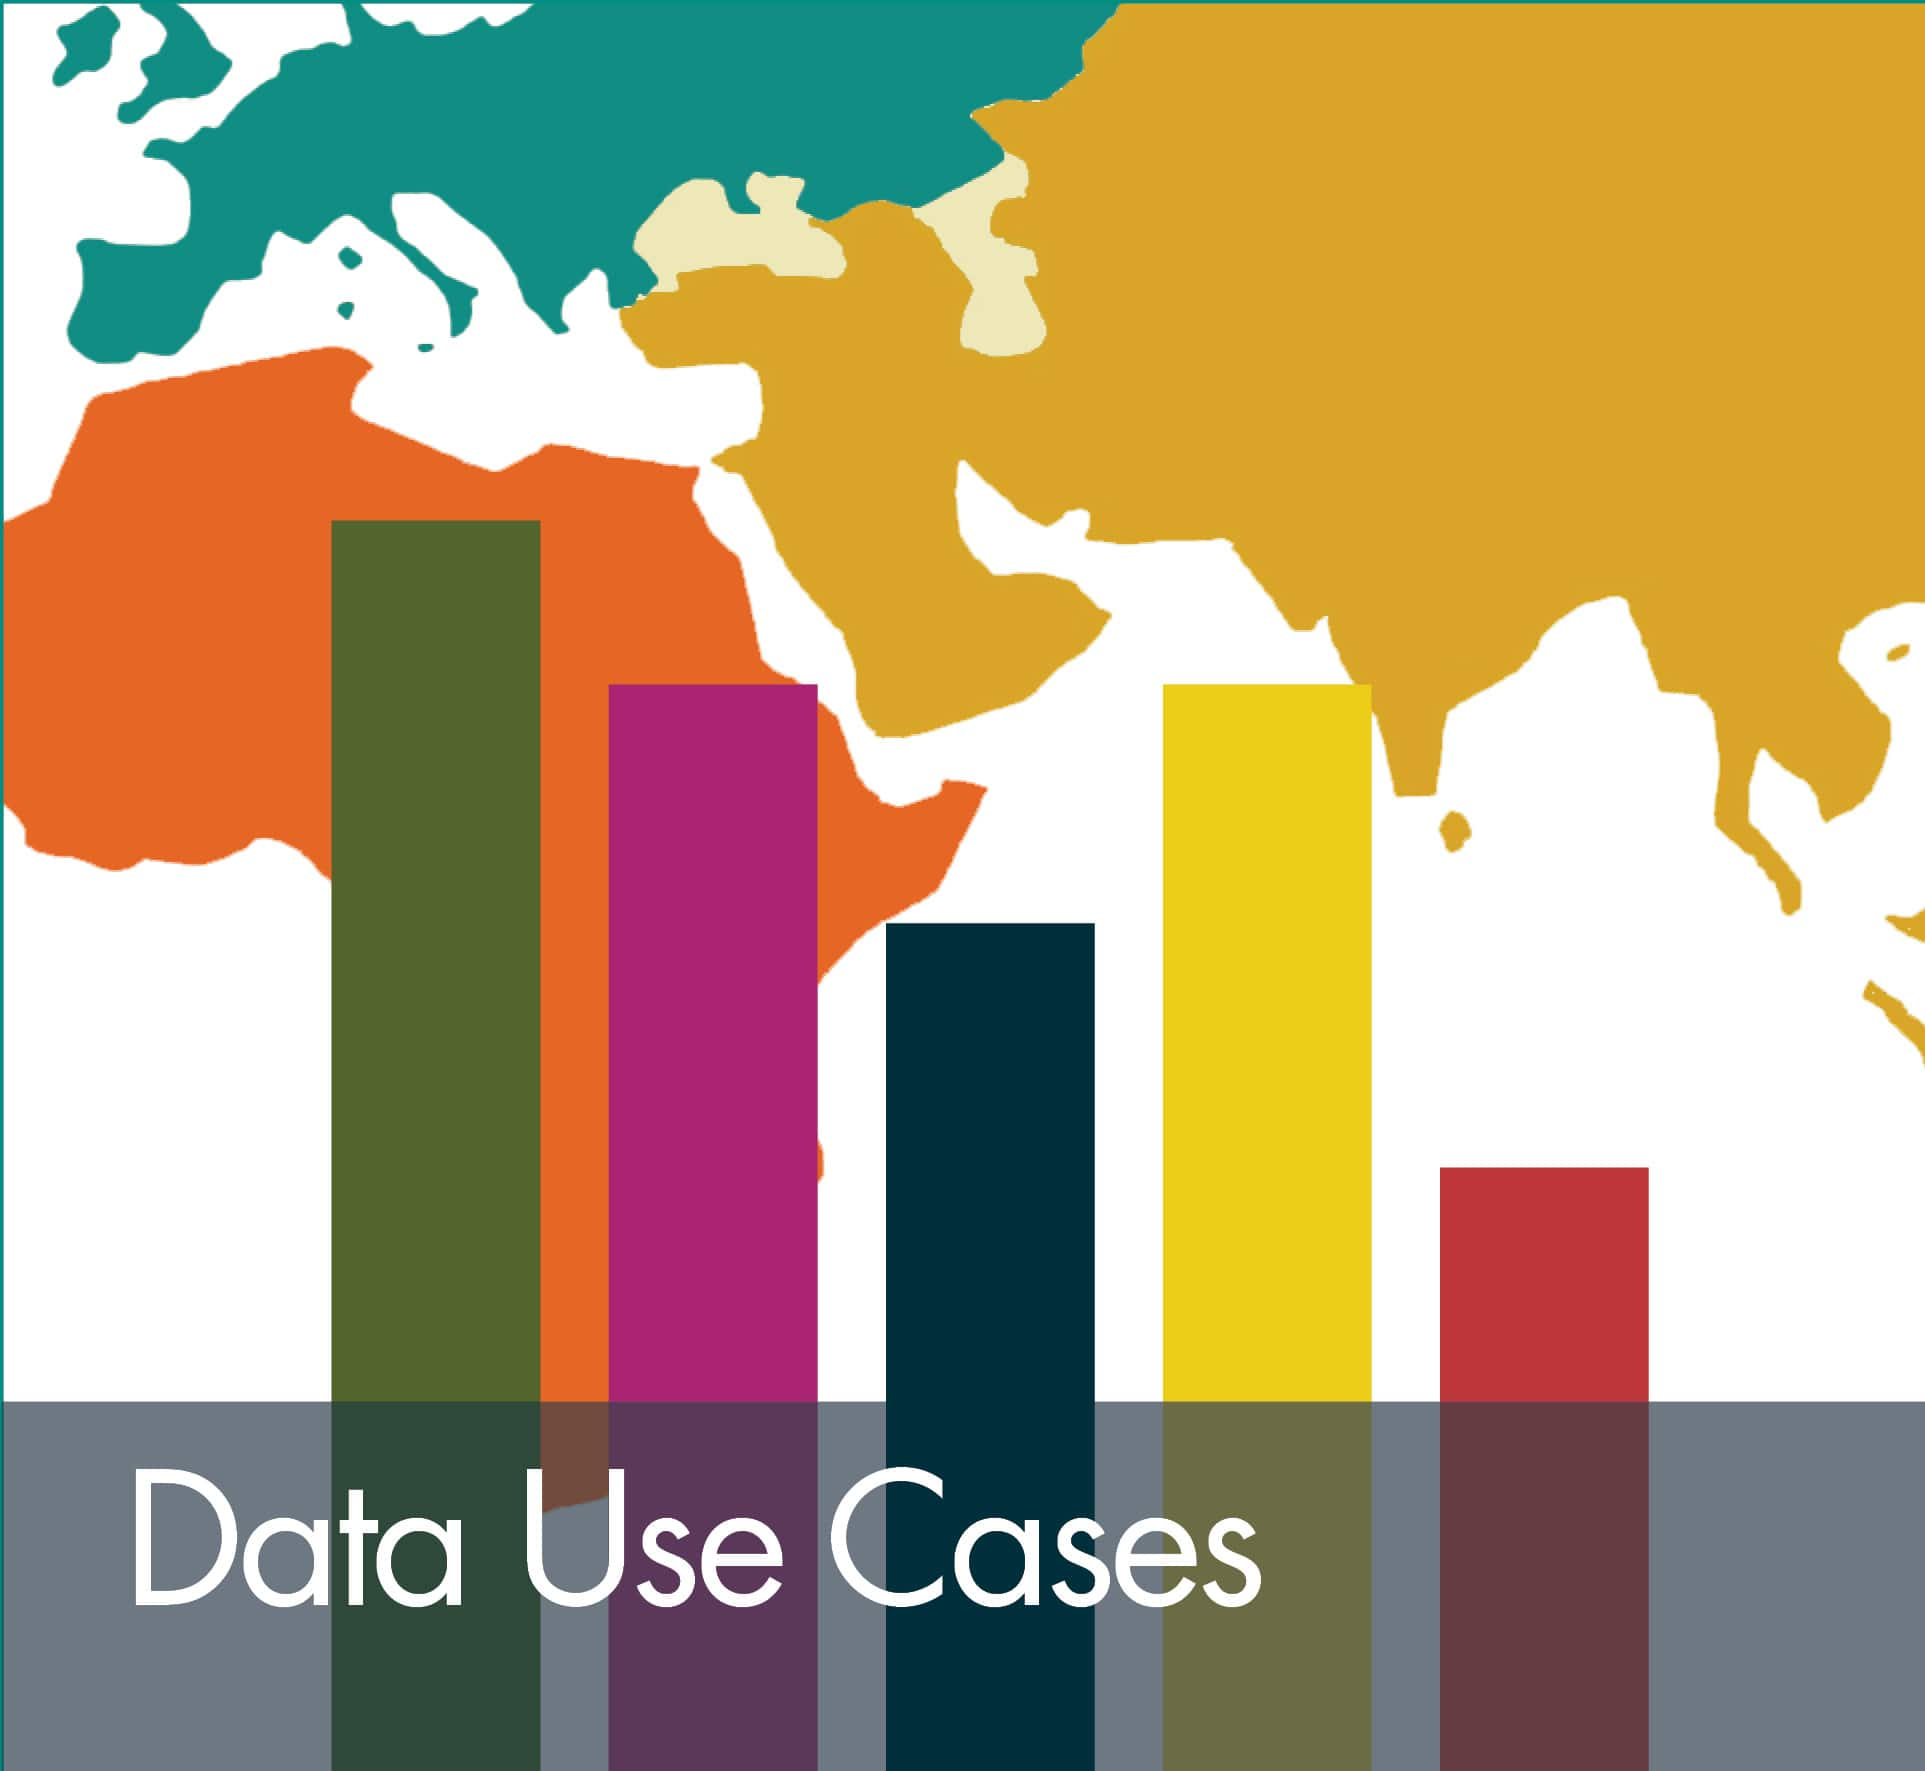 Data Use Cases